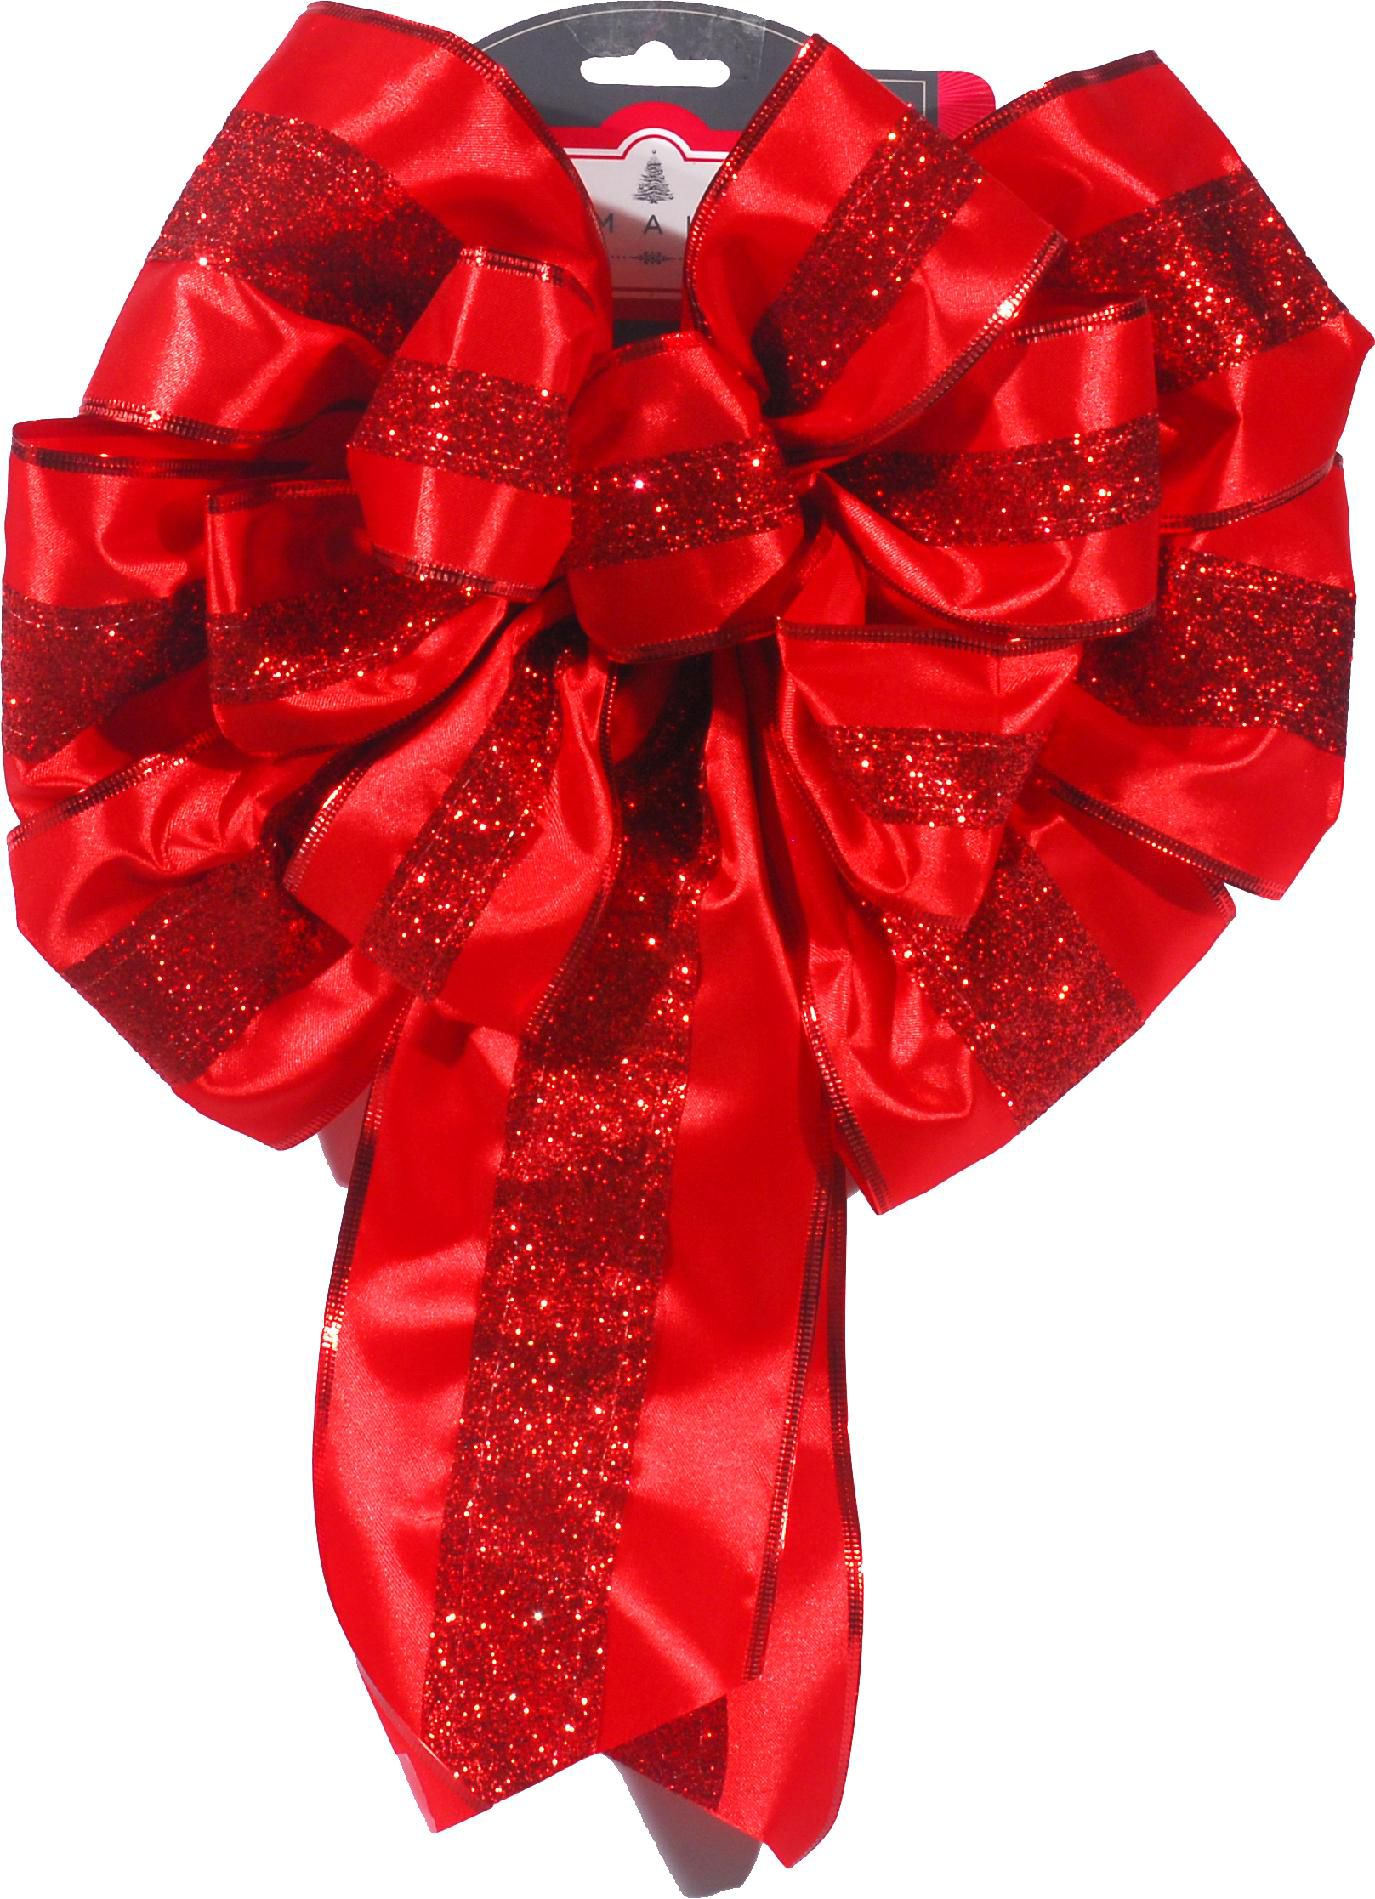 16in Satin & Glitter Bow - Red